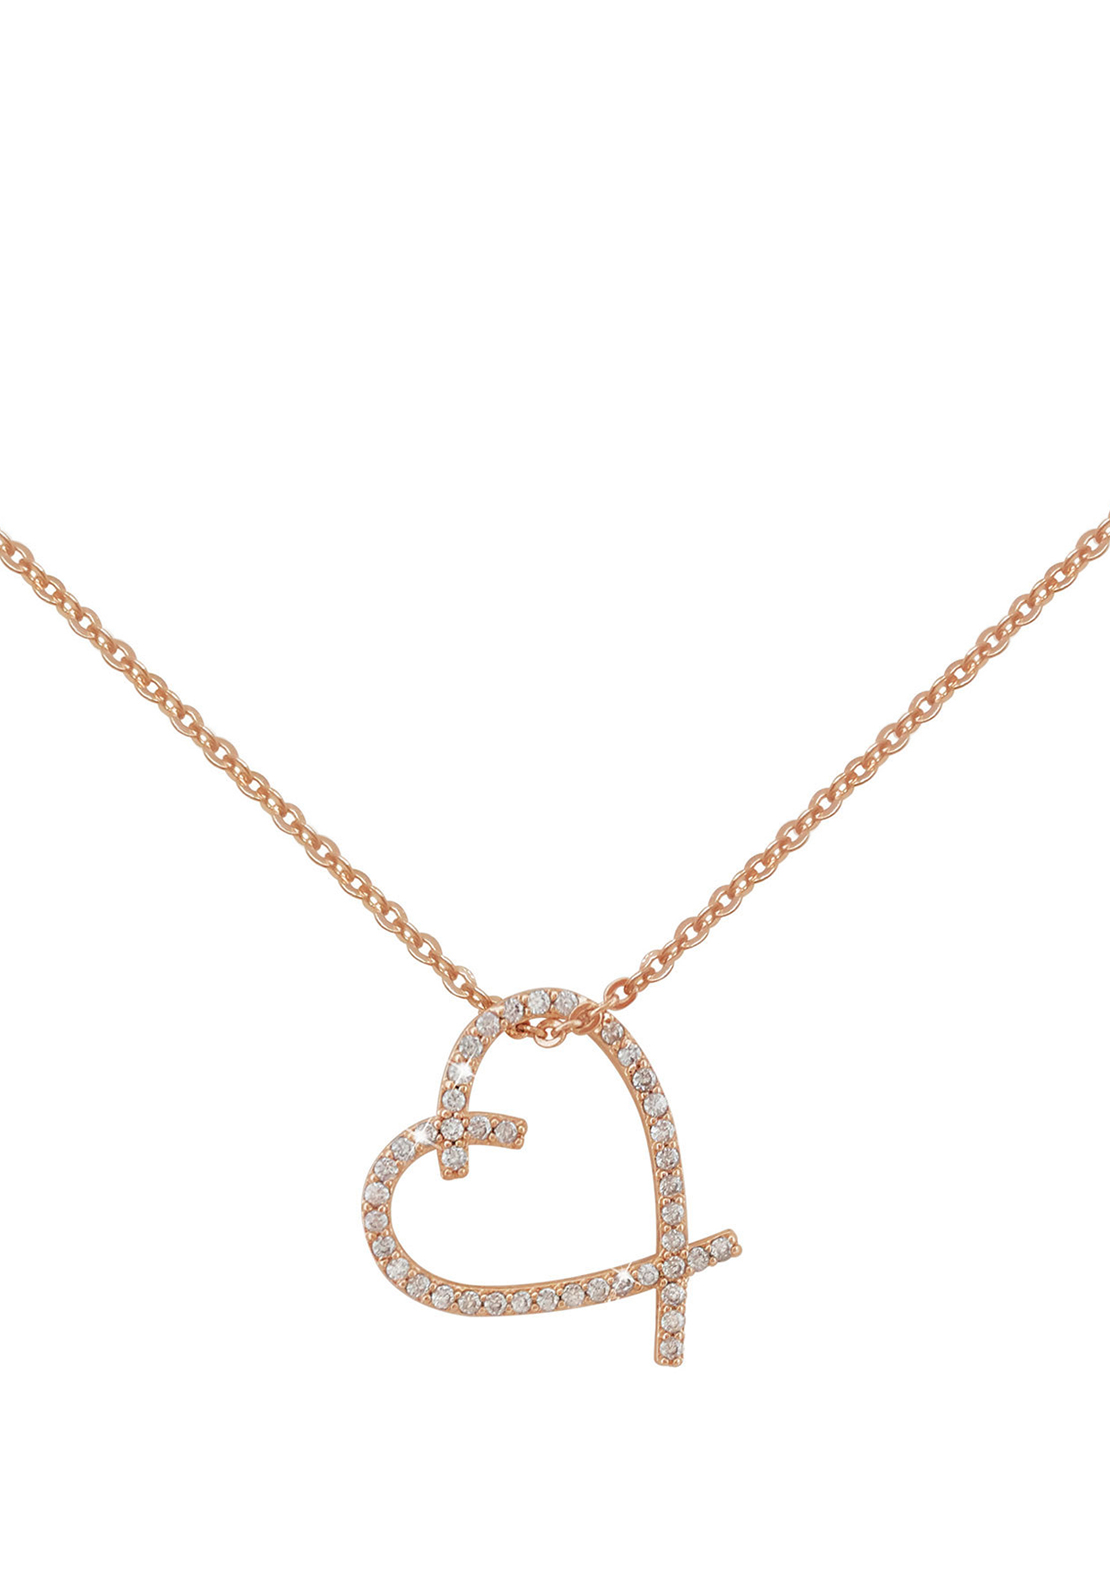 Tipperary Crystal Freehand Heart Pendant Necklace, Rose Gold